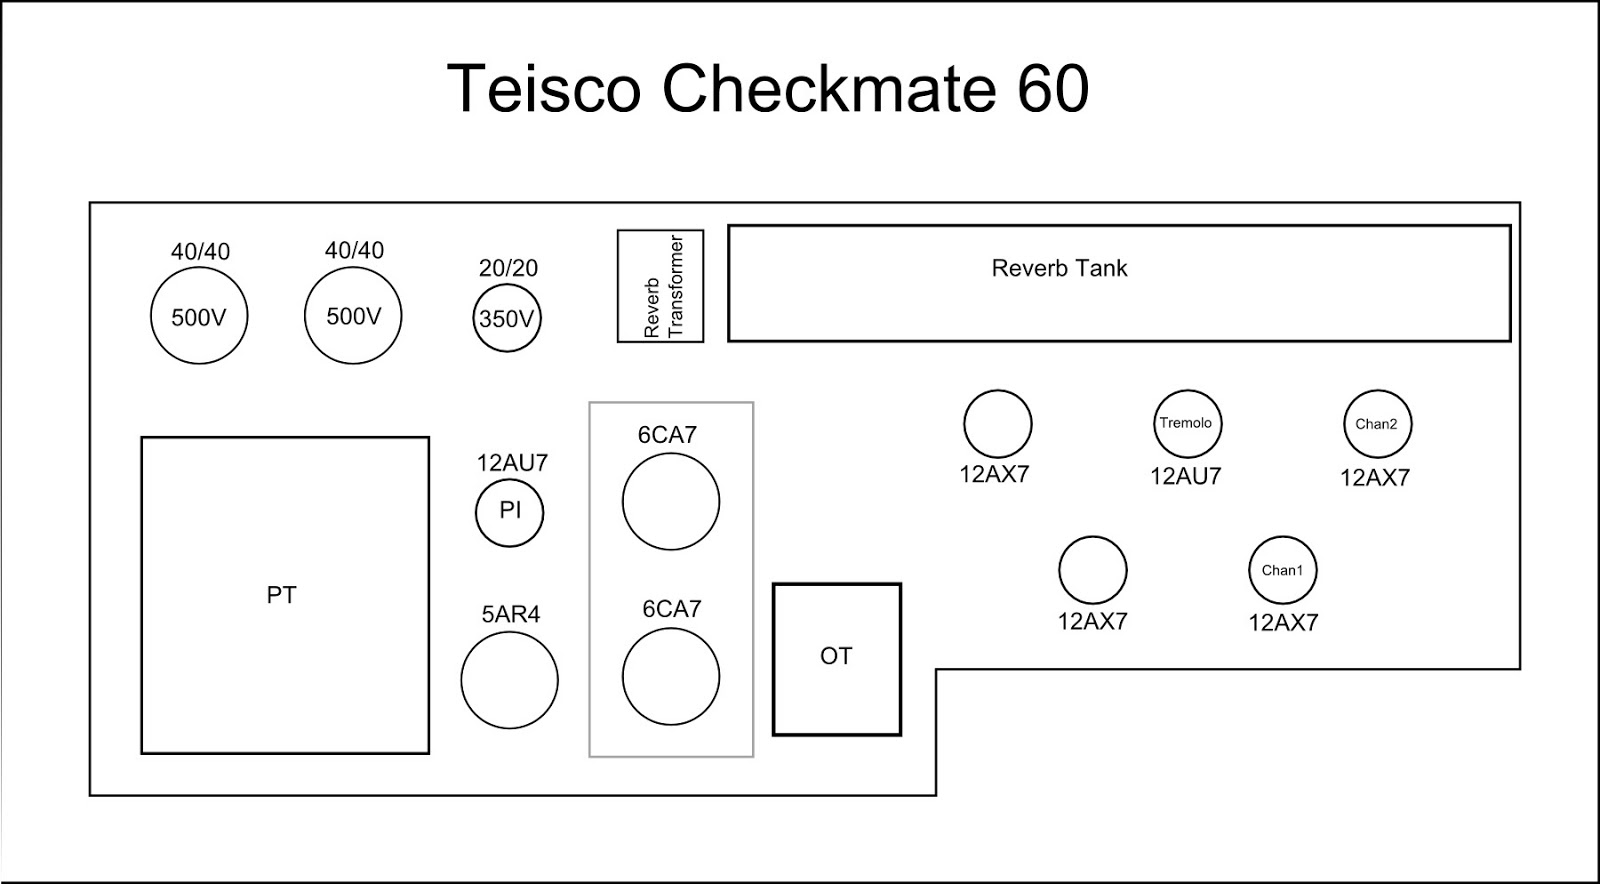 Redplate City 2013 1979 Checkmate Wiring Diagram The 60 Uses A Pair Of 6ca7 Tubes El34 I Suspect This Is Original Power Tube Complement Other Sources Reference 6l6